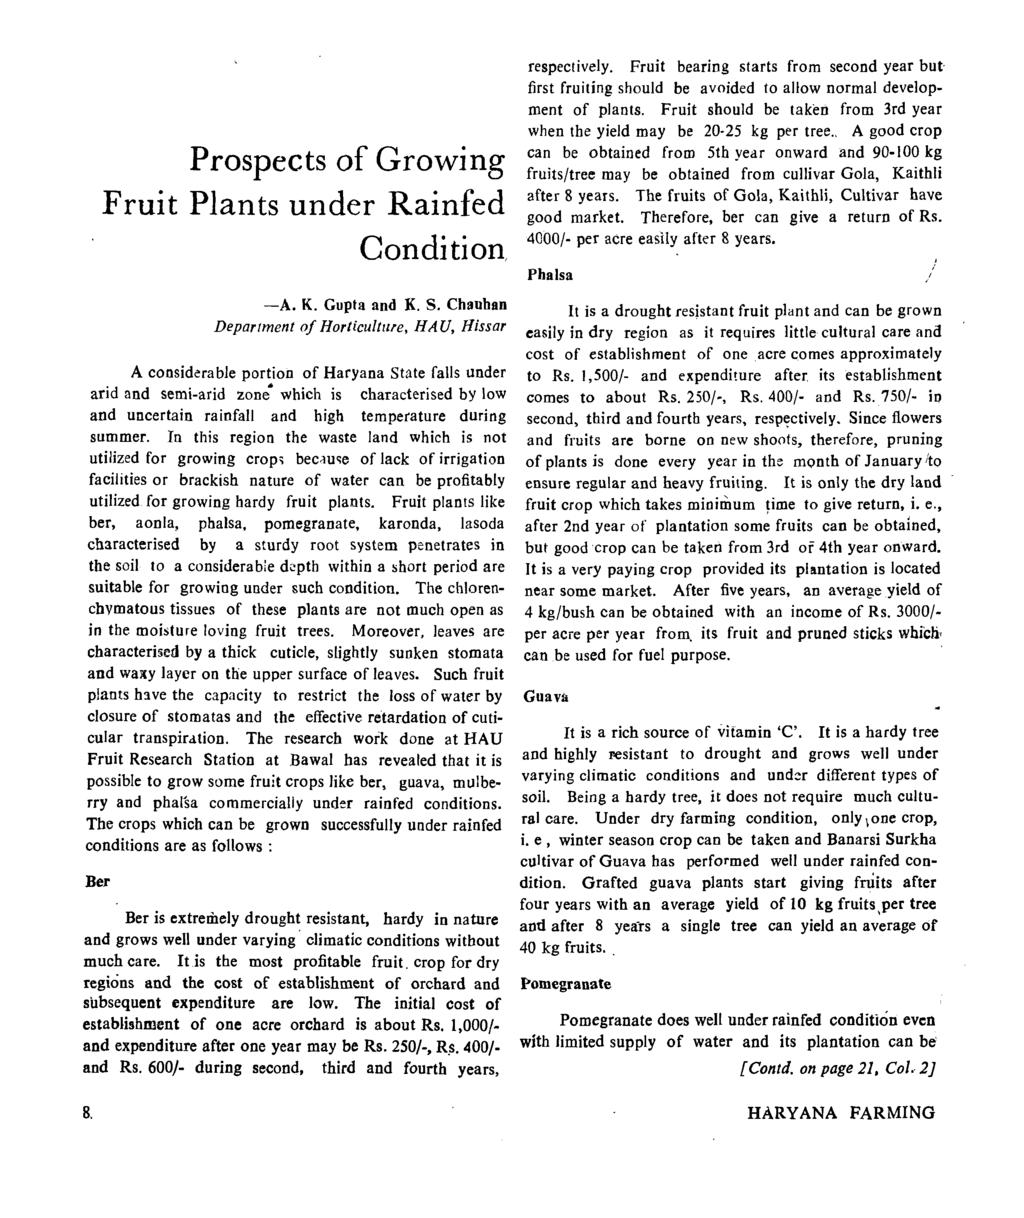 Prospects of Growing Fruit Plants under Rainfed Condition, -A. K. Gupta and K. S.